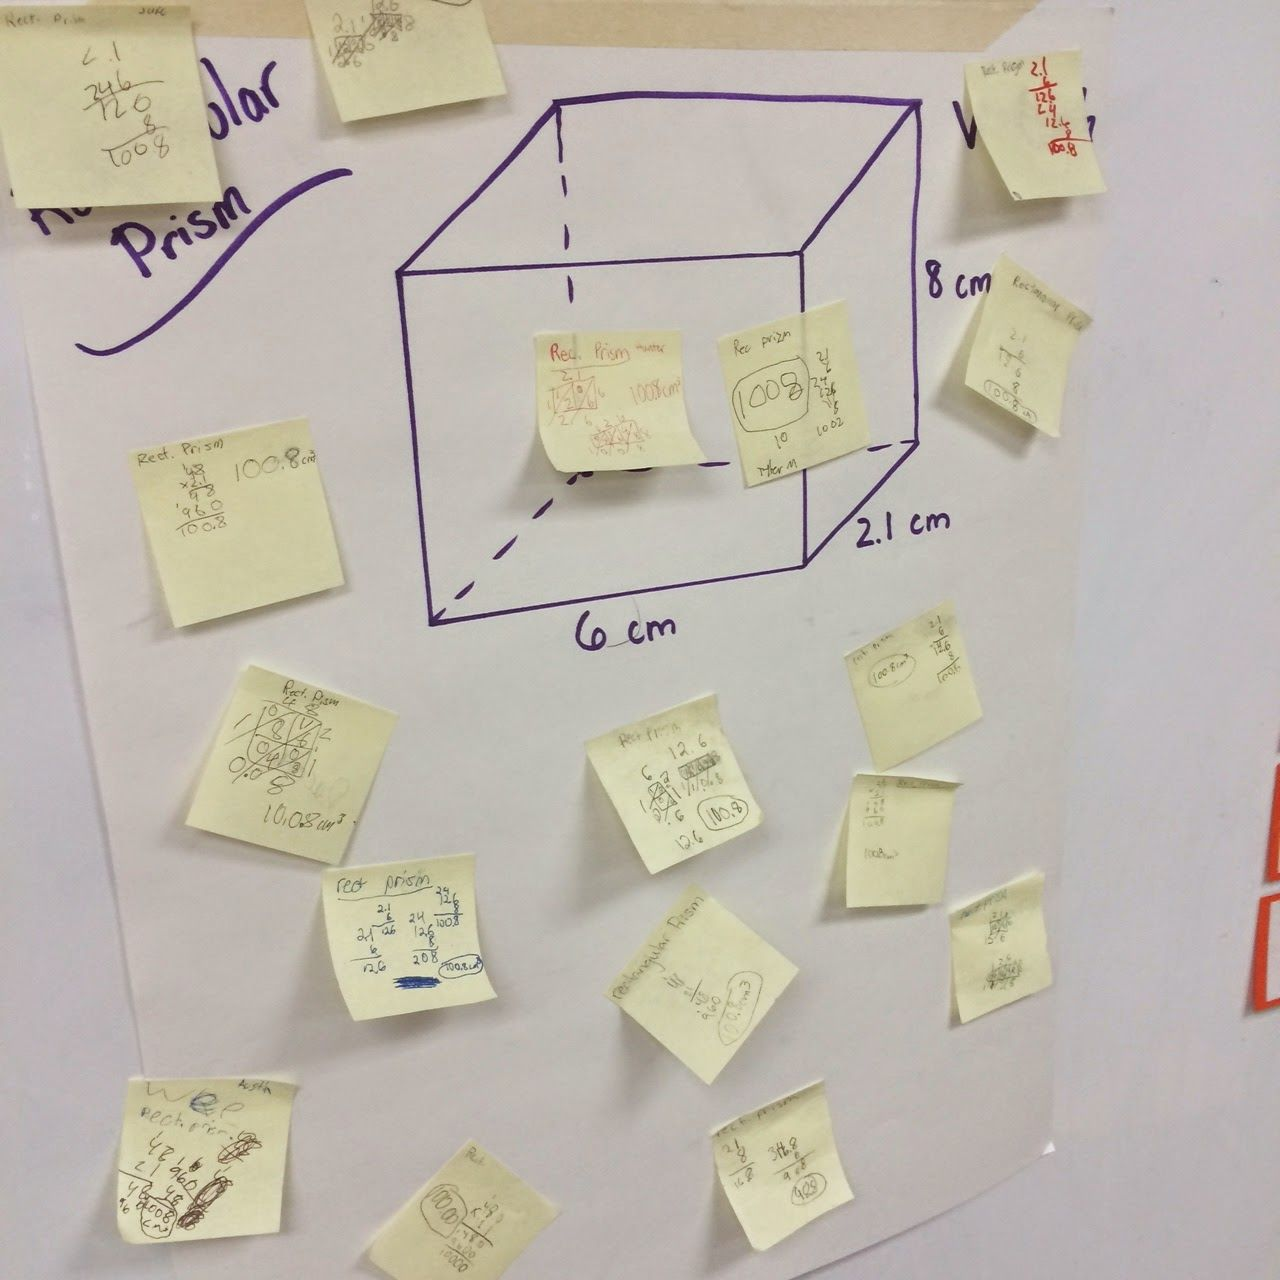 Volume Review Activity For 6th Grade Math